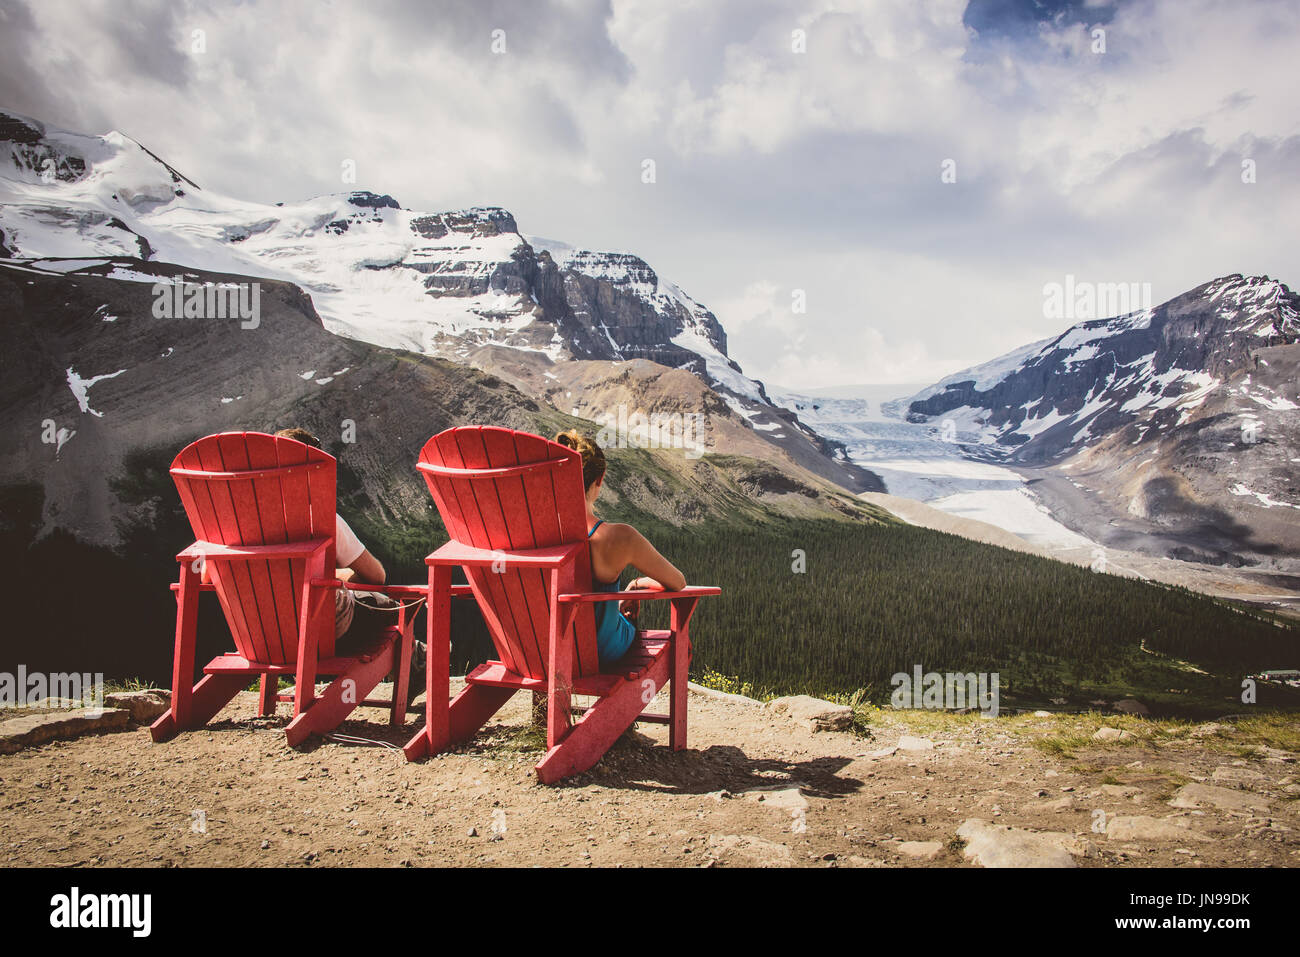 Wilcox Pass & Jasper's red chairs - Stock Image